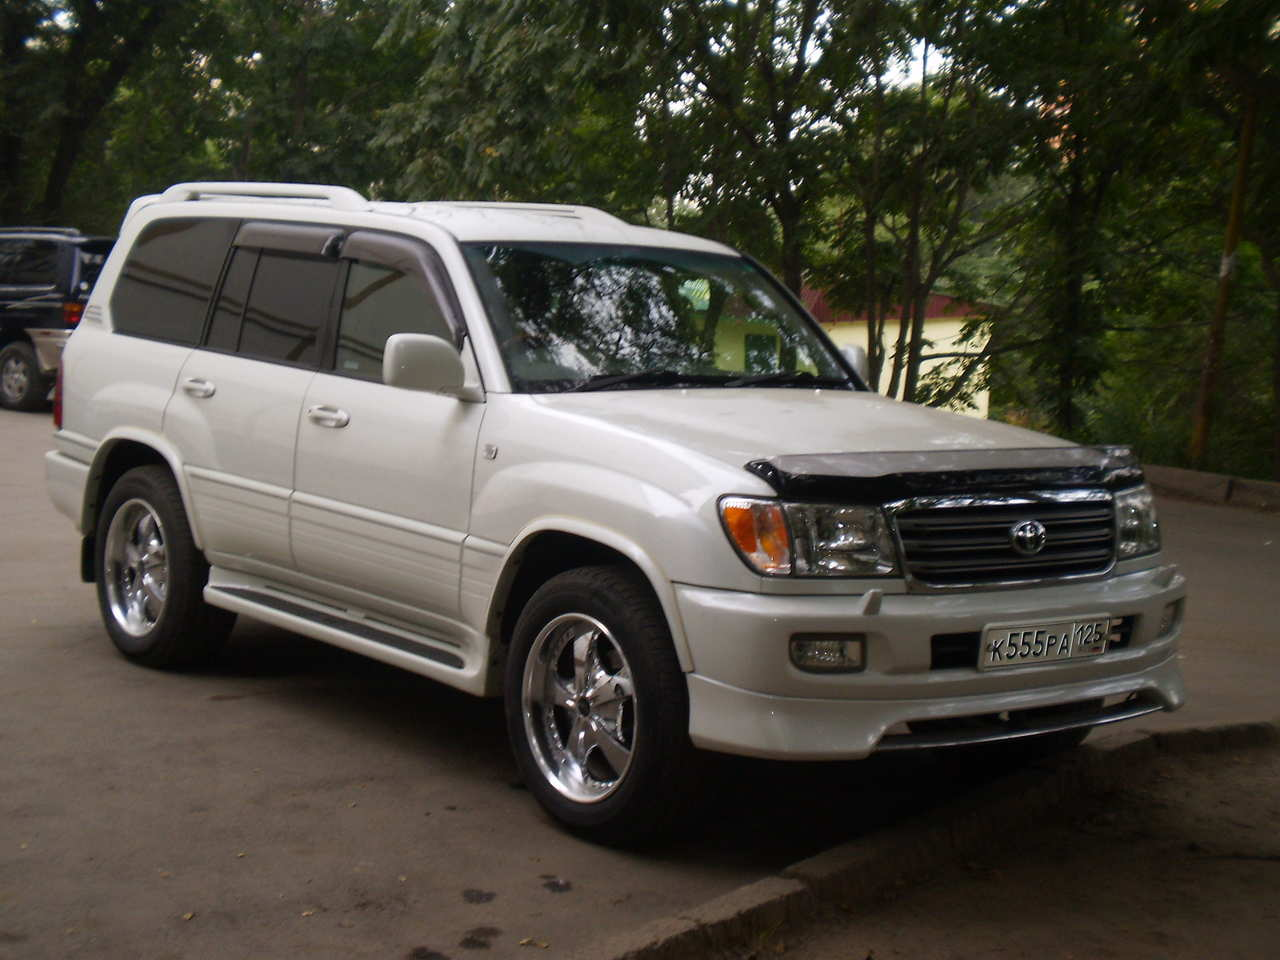 used 2004 toyota land cruiser photos 4700cc gasoline. Black Bedroom Furniture Sets. Home Design Ideas